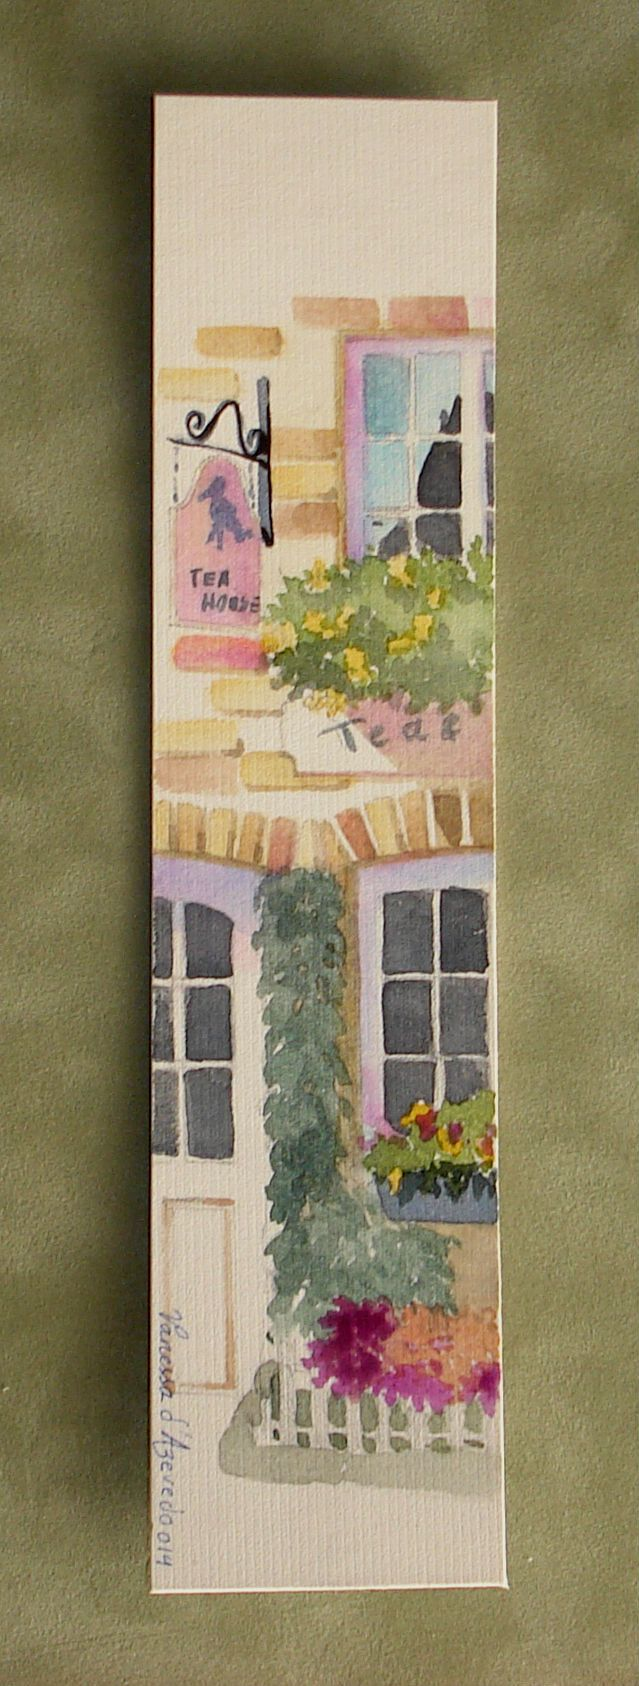 Watercolor bookmark patterns - Find This Pin And More On Bookmark Watercolour